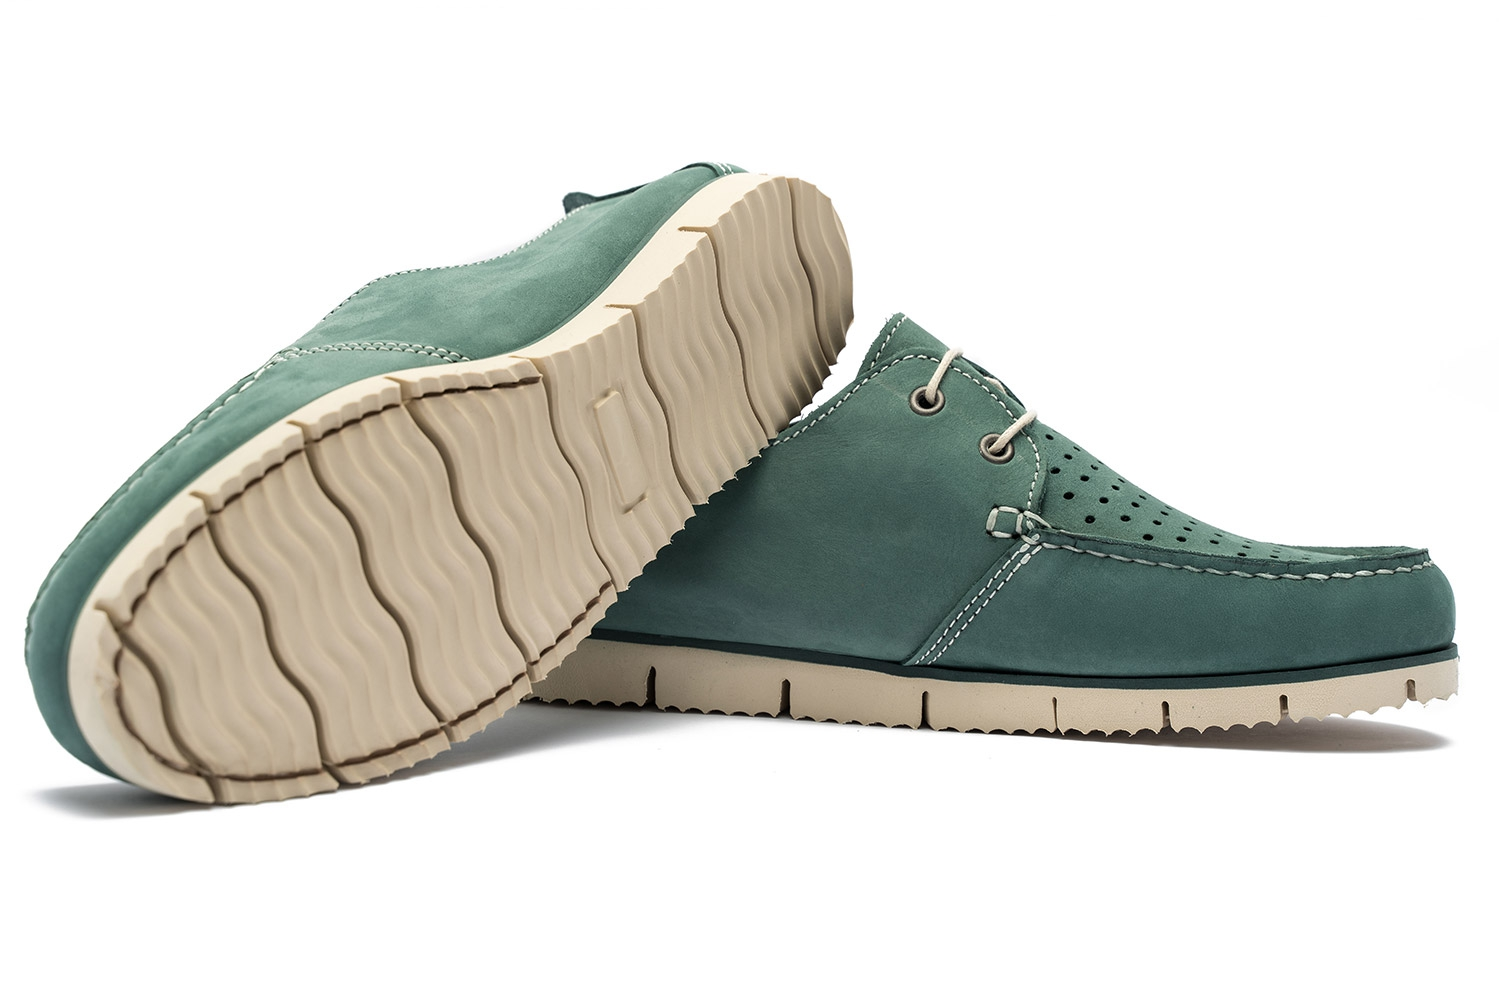 Green Nubuck leather Shoes 1